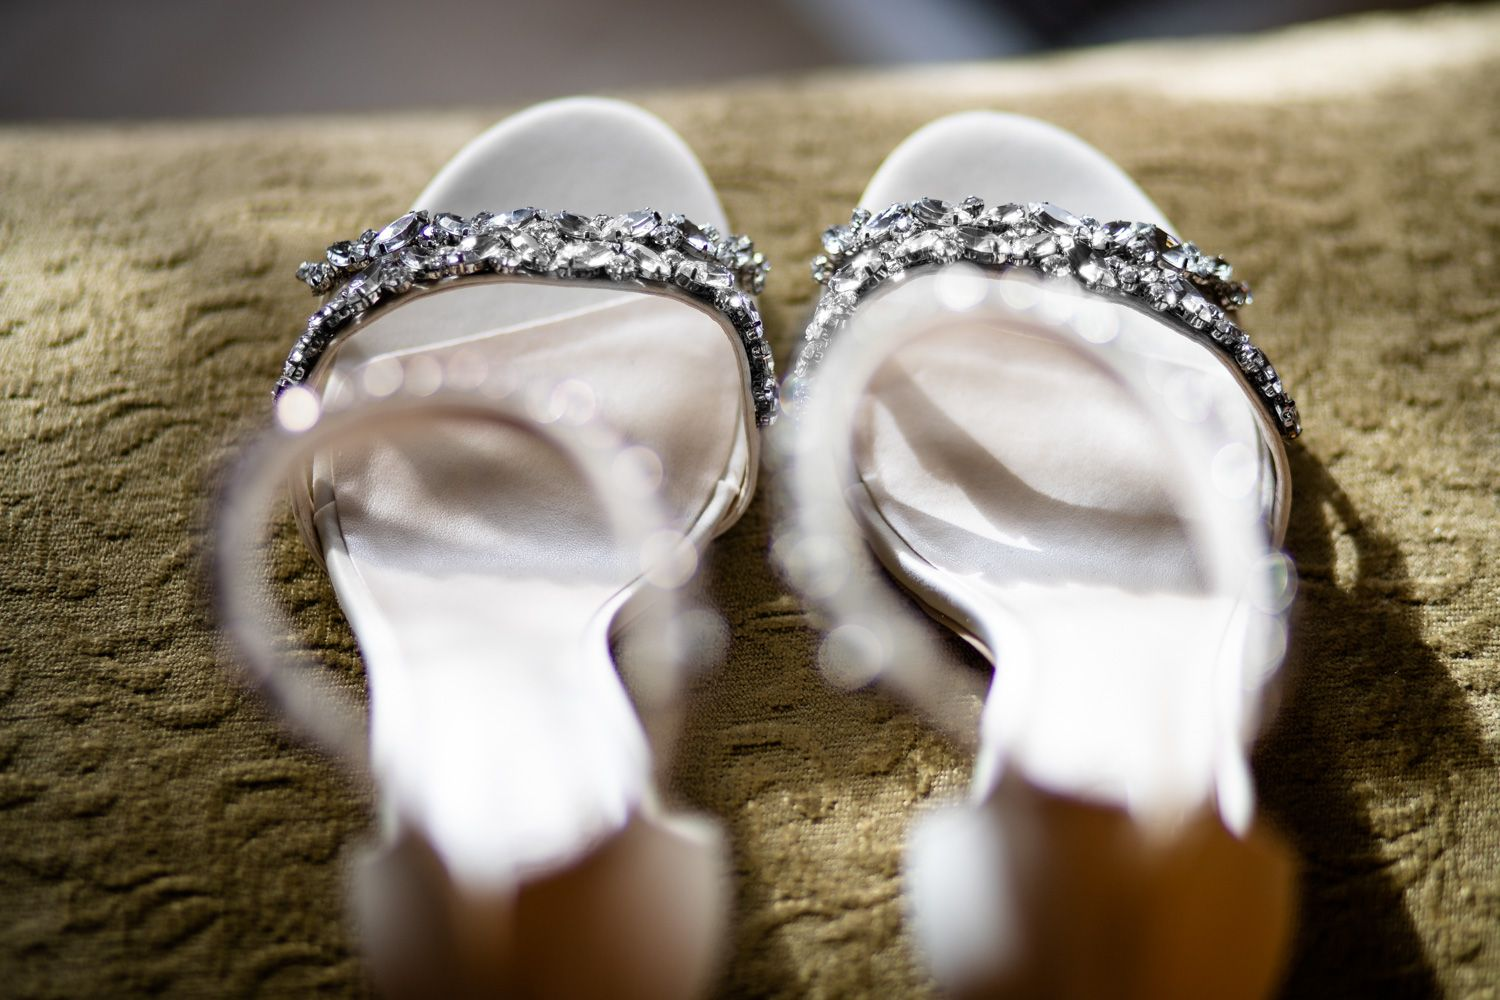 Bride's sandals with rhinestones, Connecticut wedding